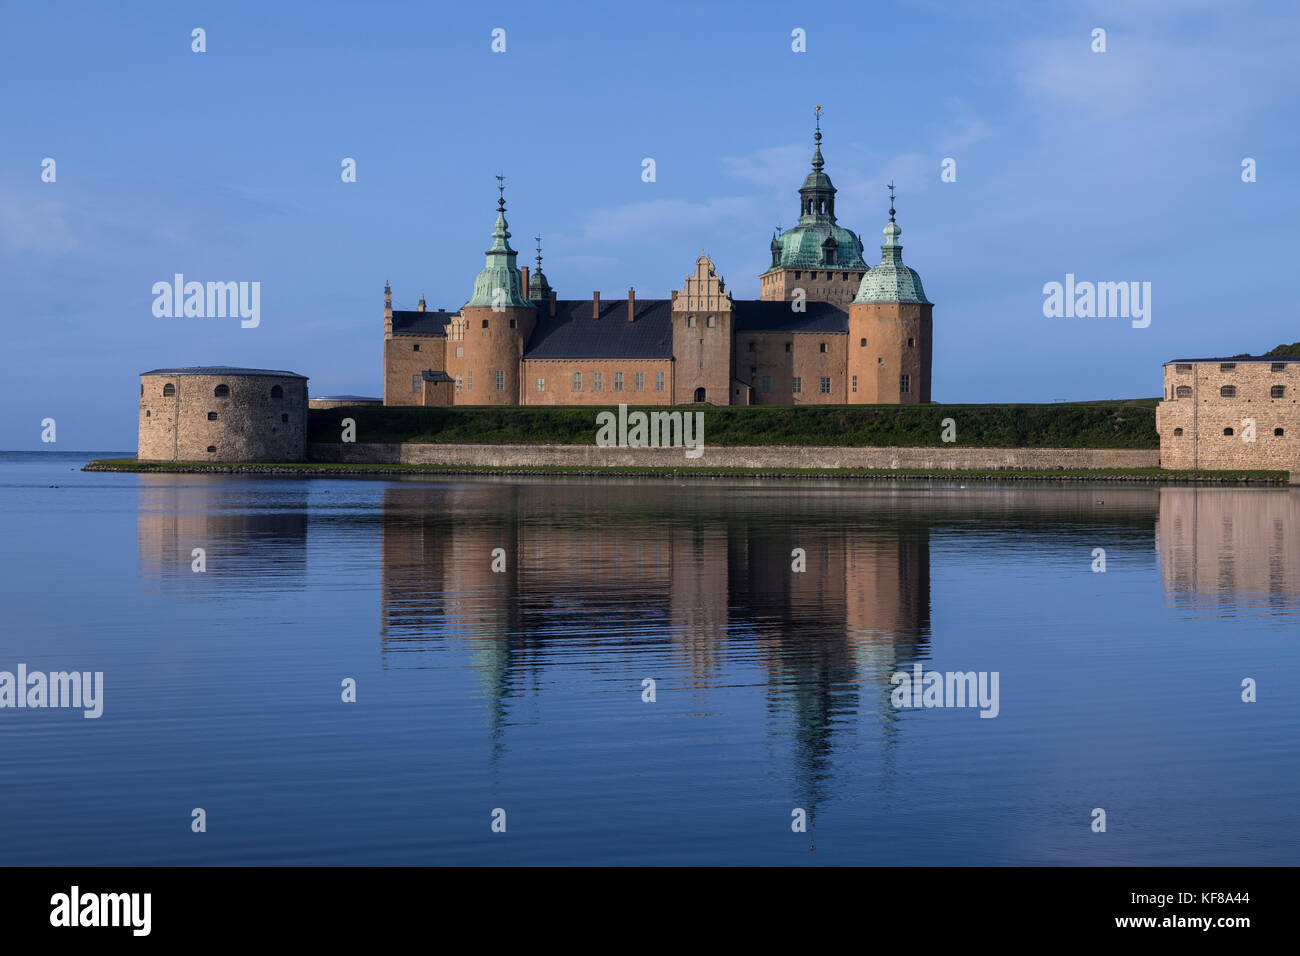 Kalmar Castle or Kalmar Slott - a castle in the city of Kalmar in the province of Smaland in Sweden. Parts of the - Stock Image